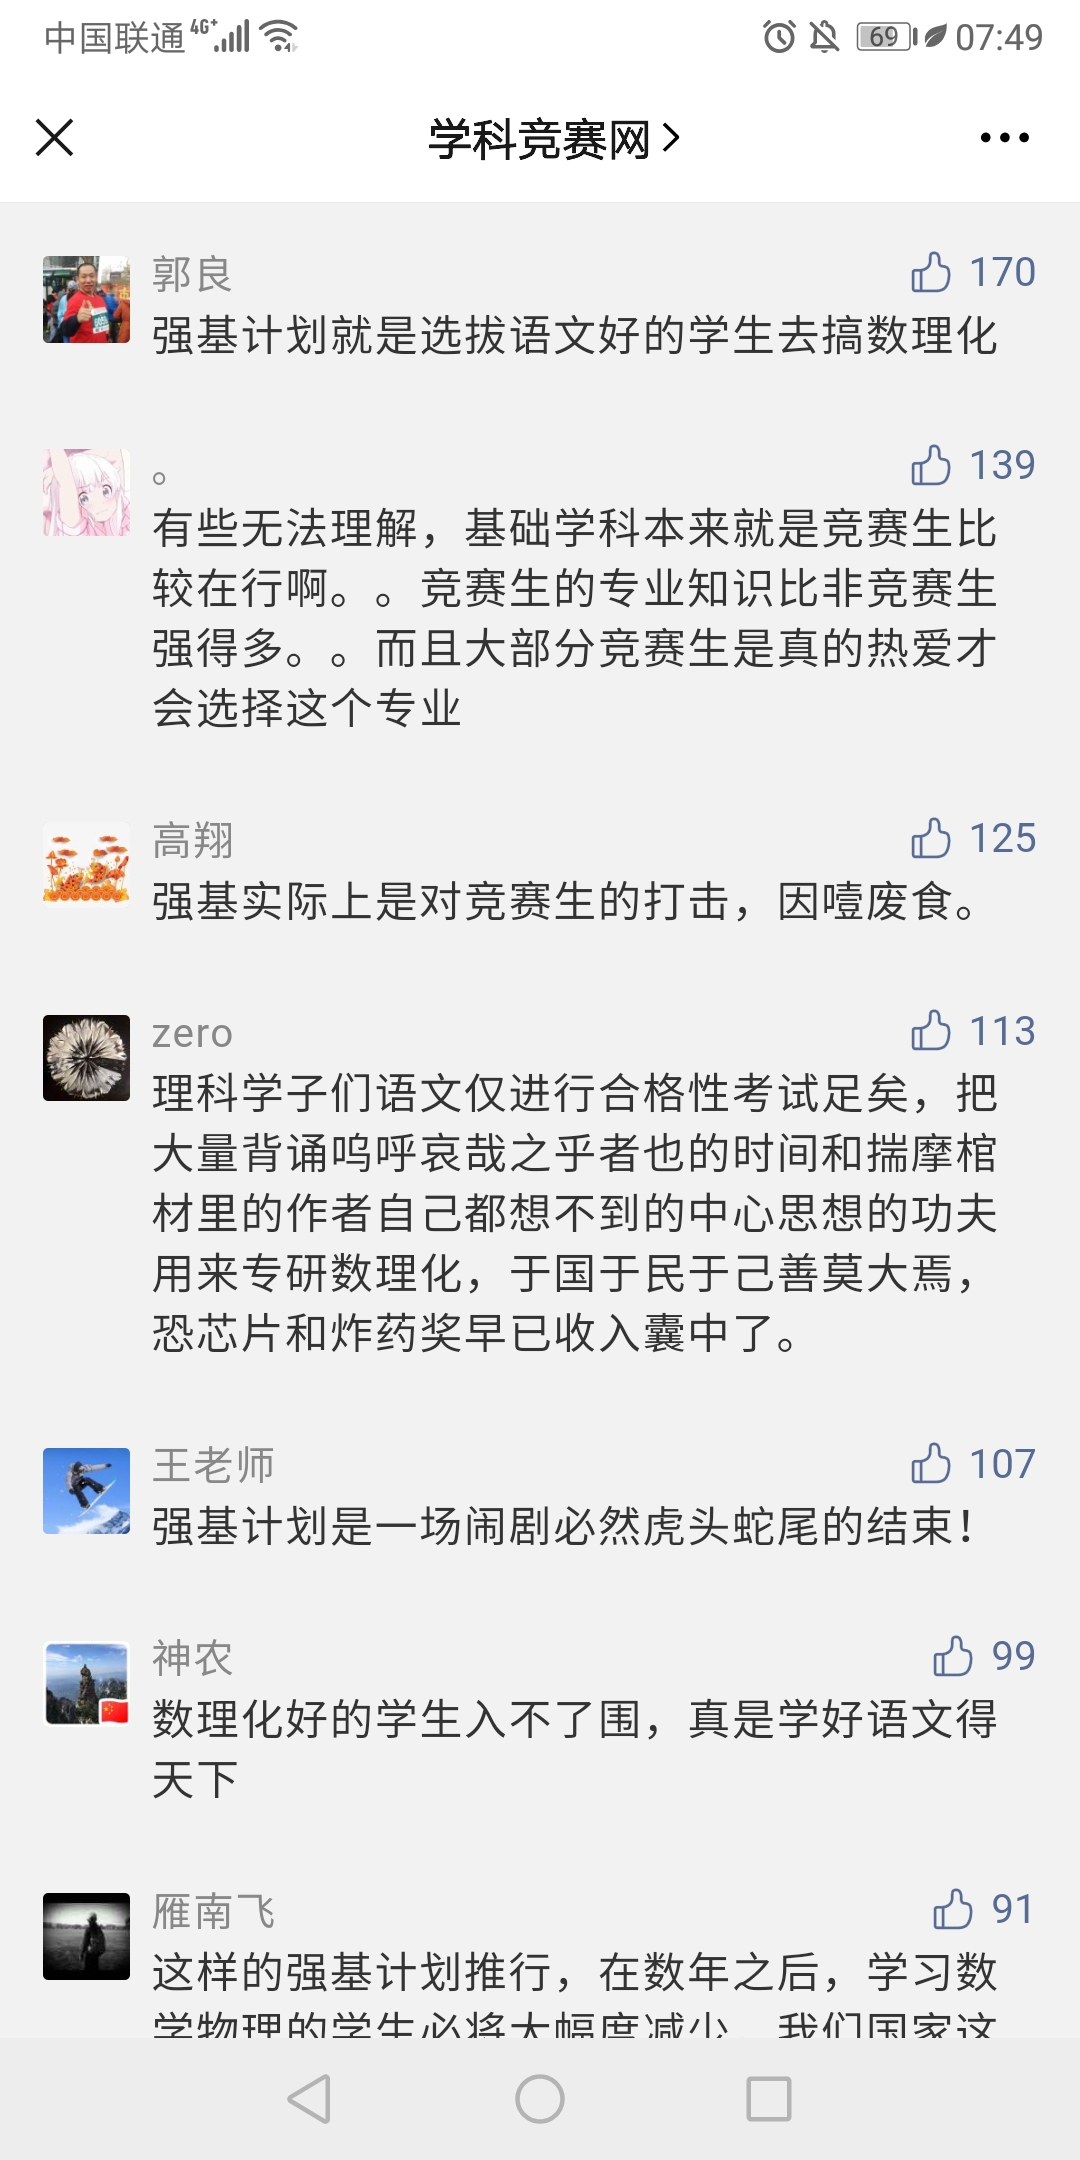 Screenshot_20200915_074957_com.tencent.mm.jpg